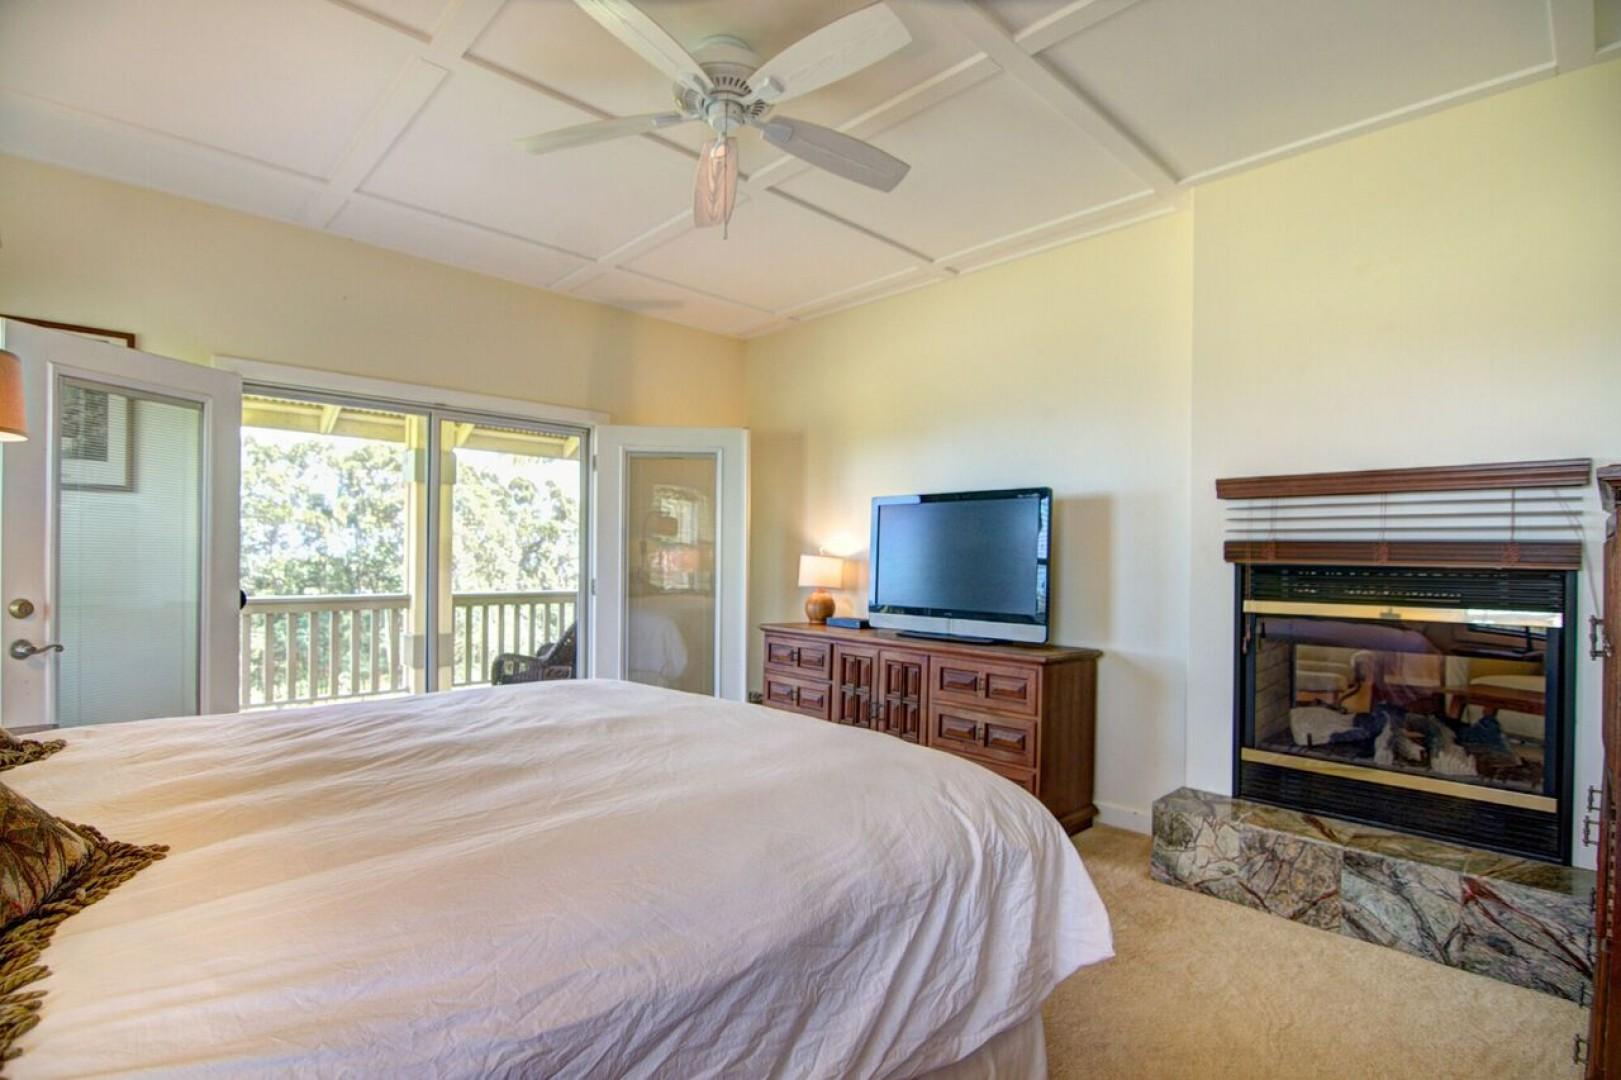 The master bedroom has a king sized bed, access to the back lanai, TV and fireplace...